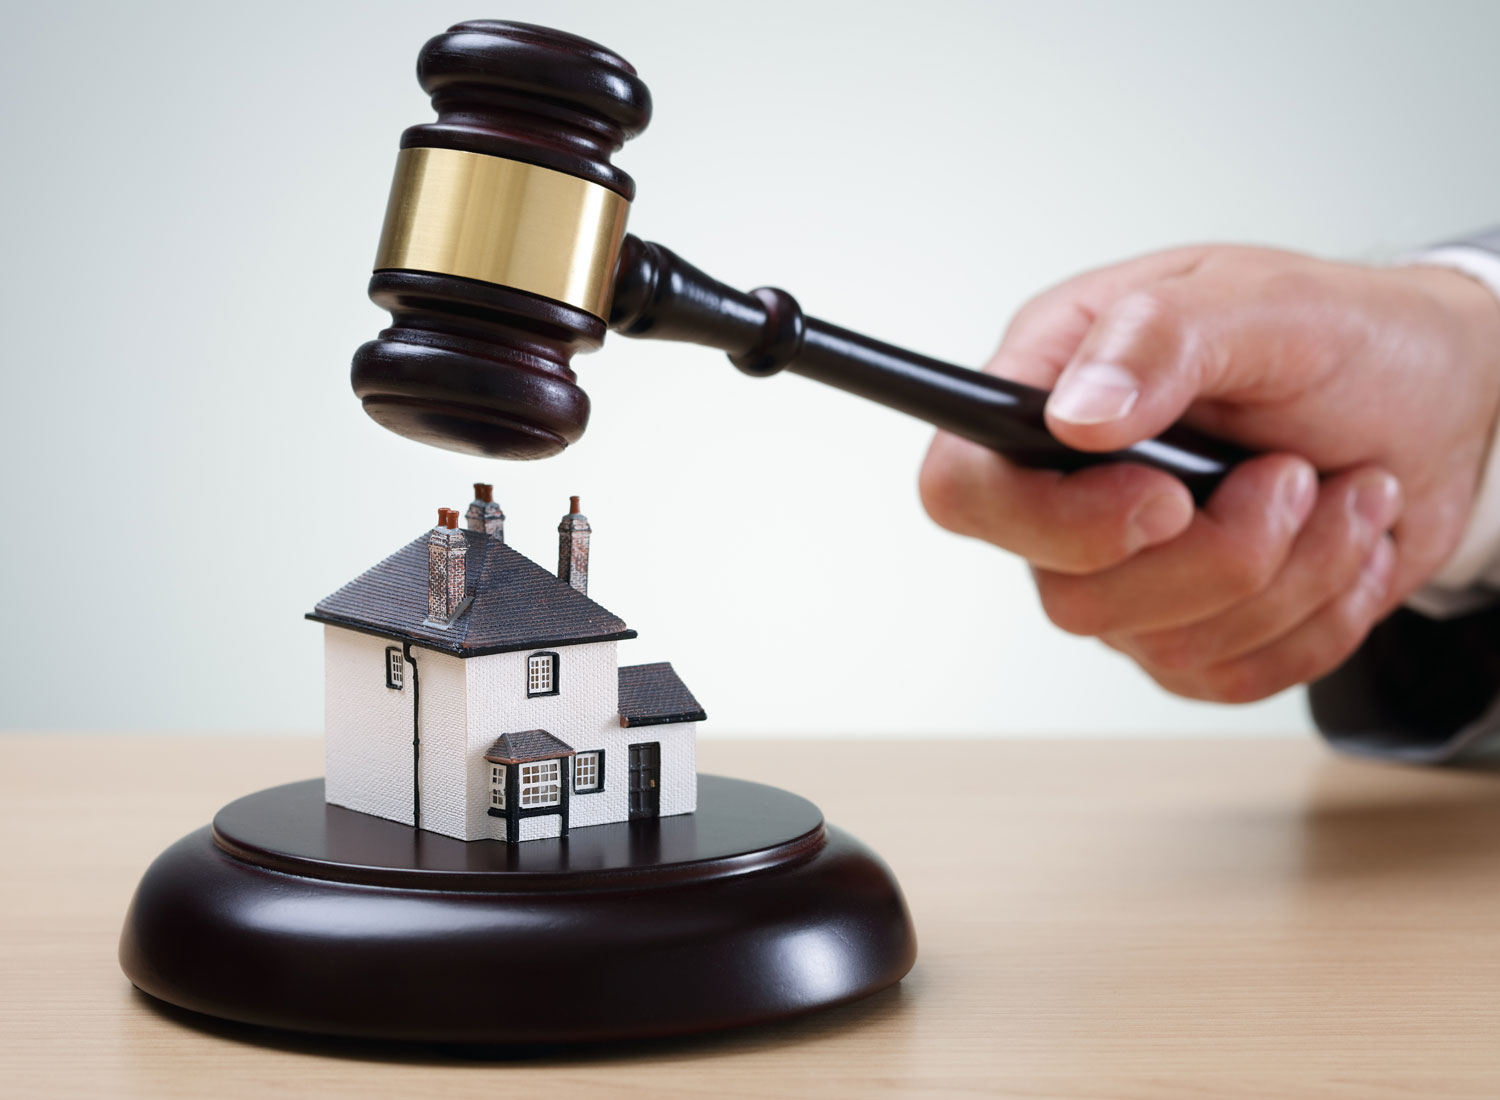 Eviction Attorney for Landlords: The Importance of the 3 Day Notice